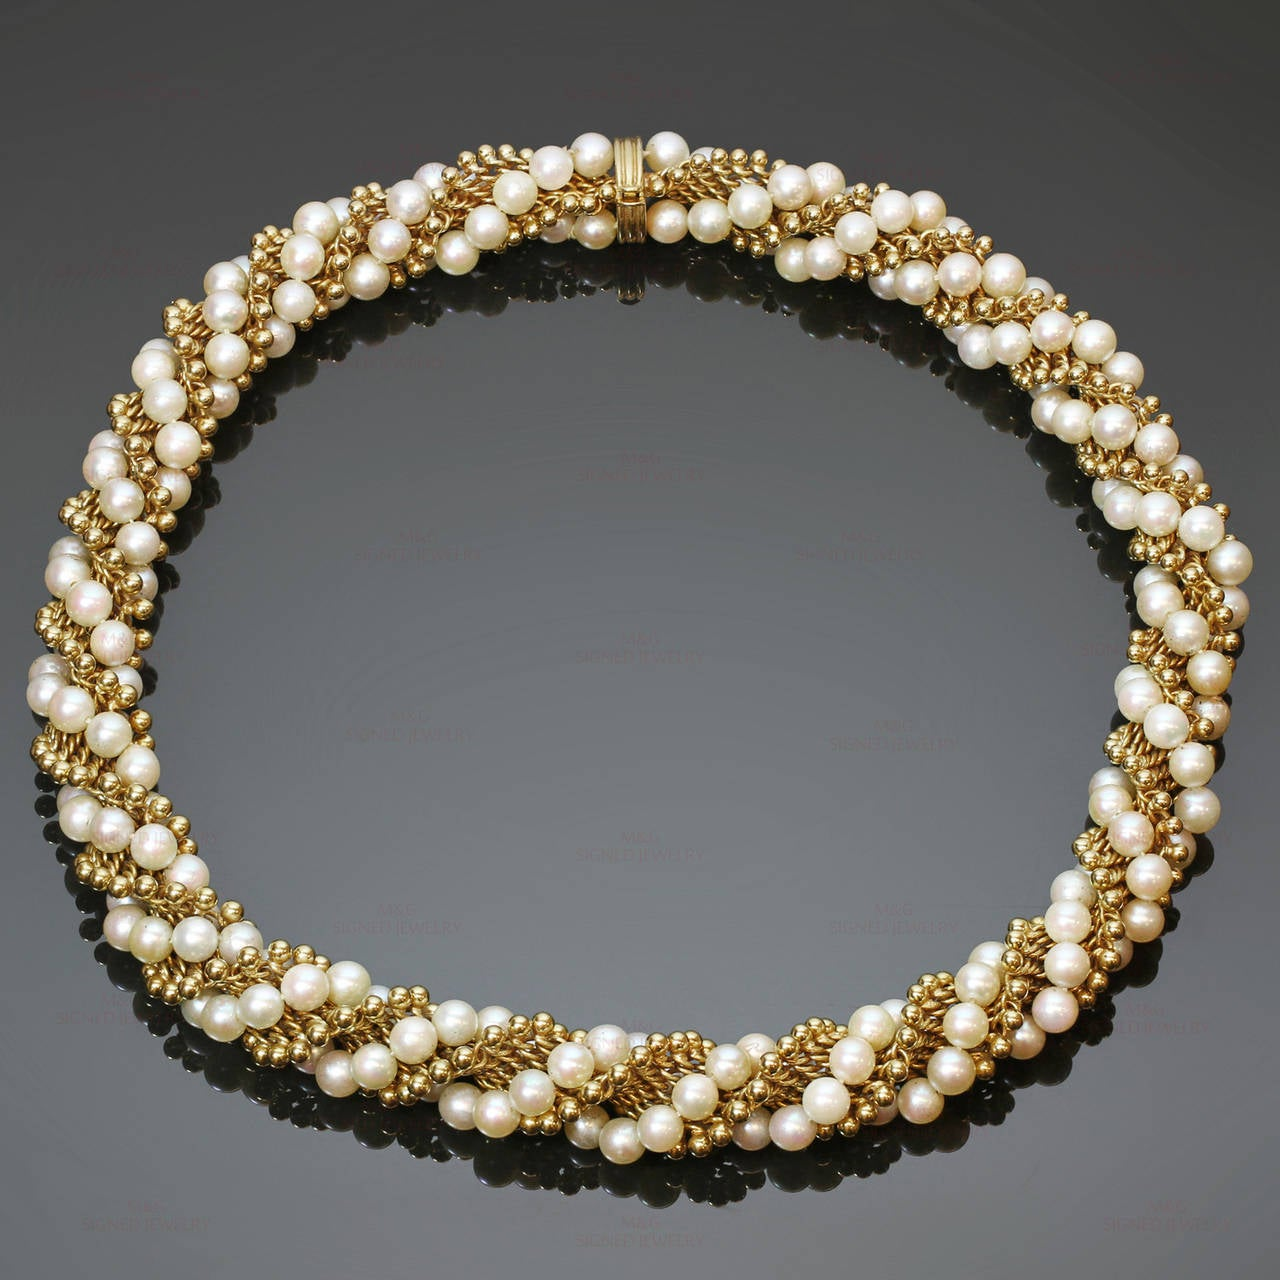 1960s VAN CLEEF & ARPELS Twist Cultured Pearl Yellow Gold Necklace For Sale 1